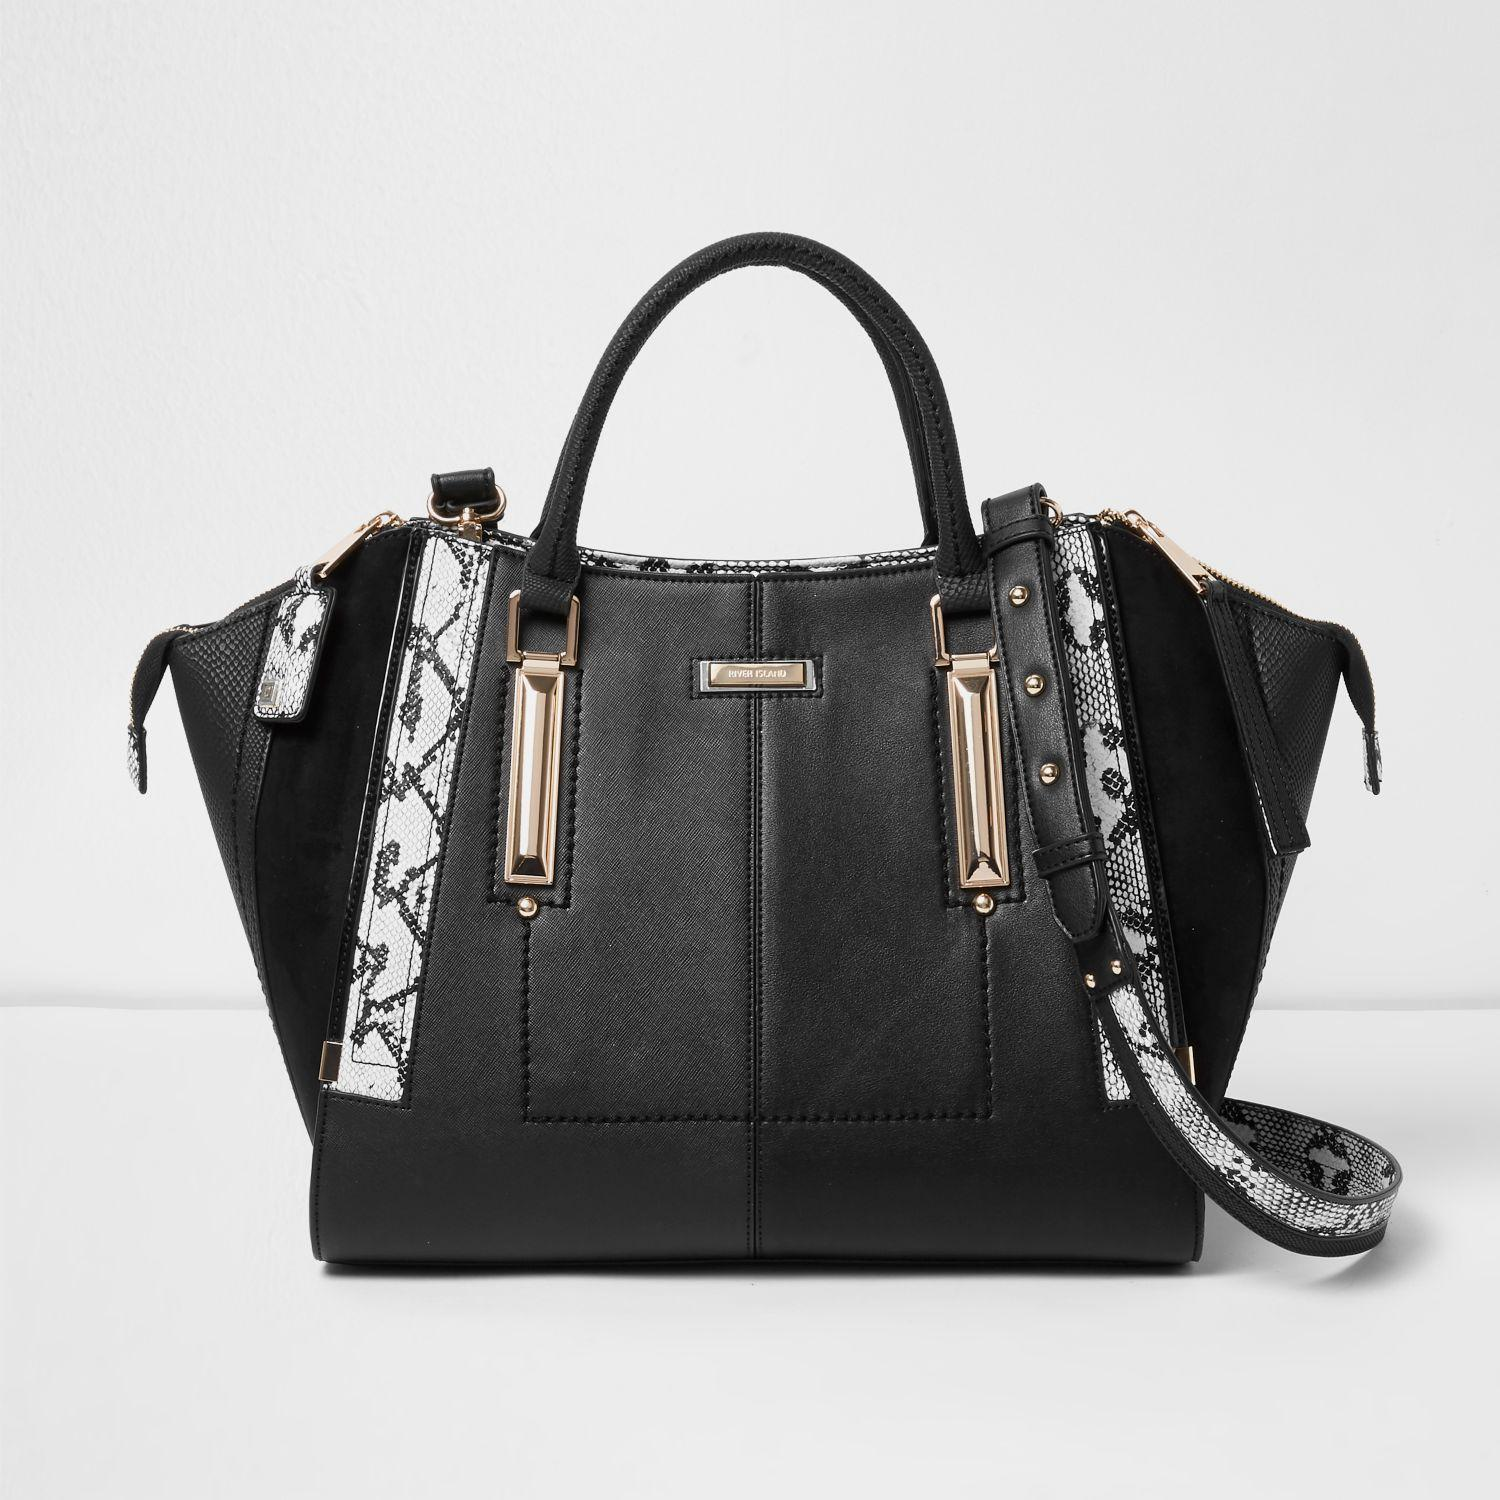 4713872ddb Lyst - River Island Black Dipped Top Winged Tote Bag in Black